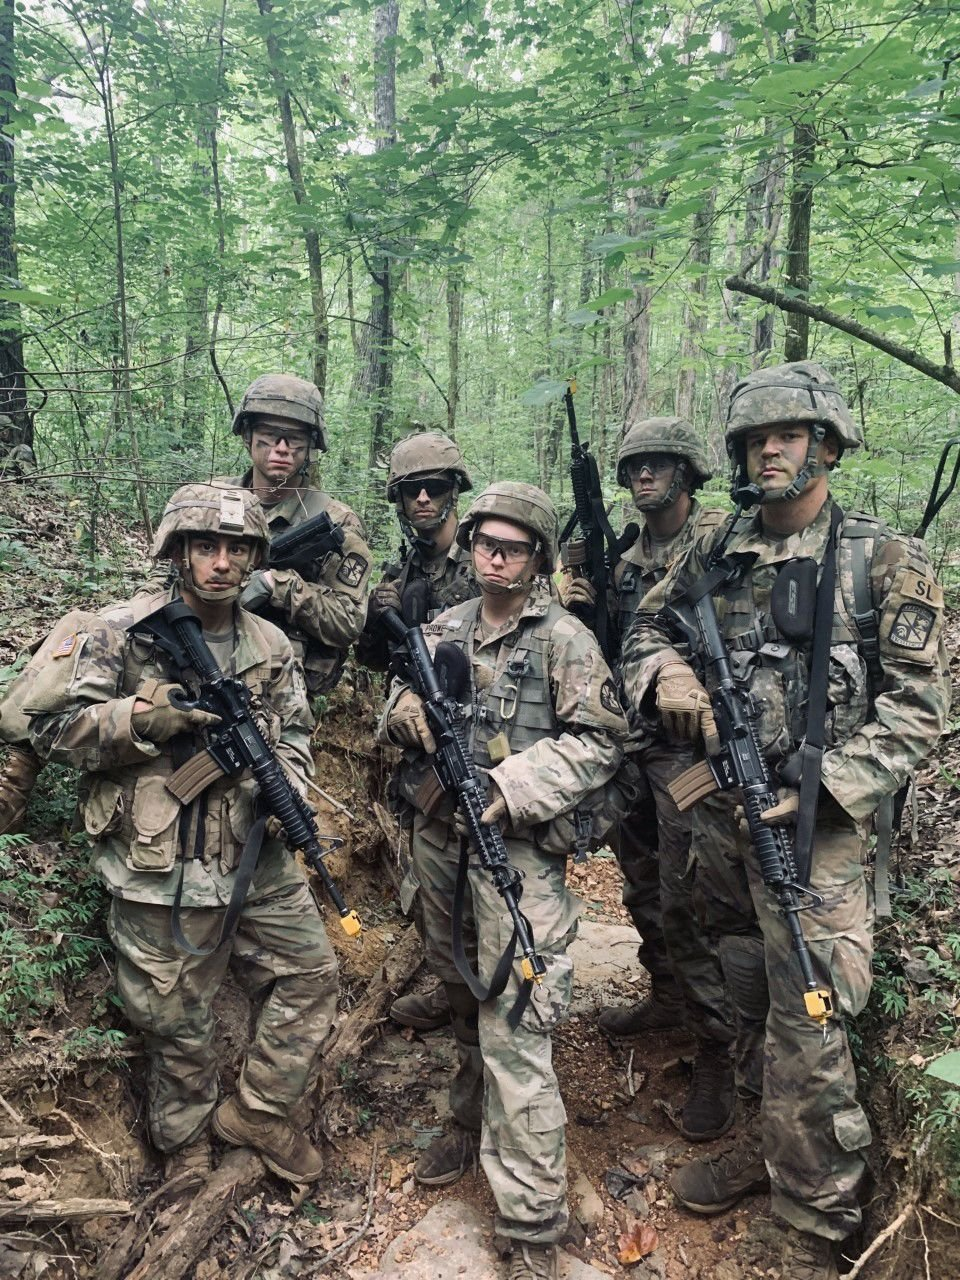 Community: How ROTC training helped me see the best in America